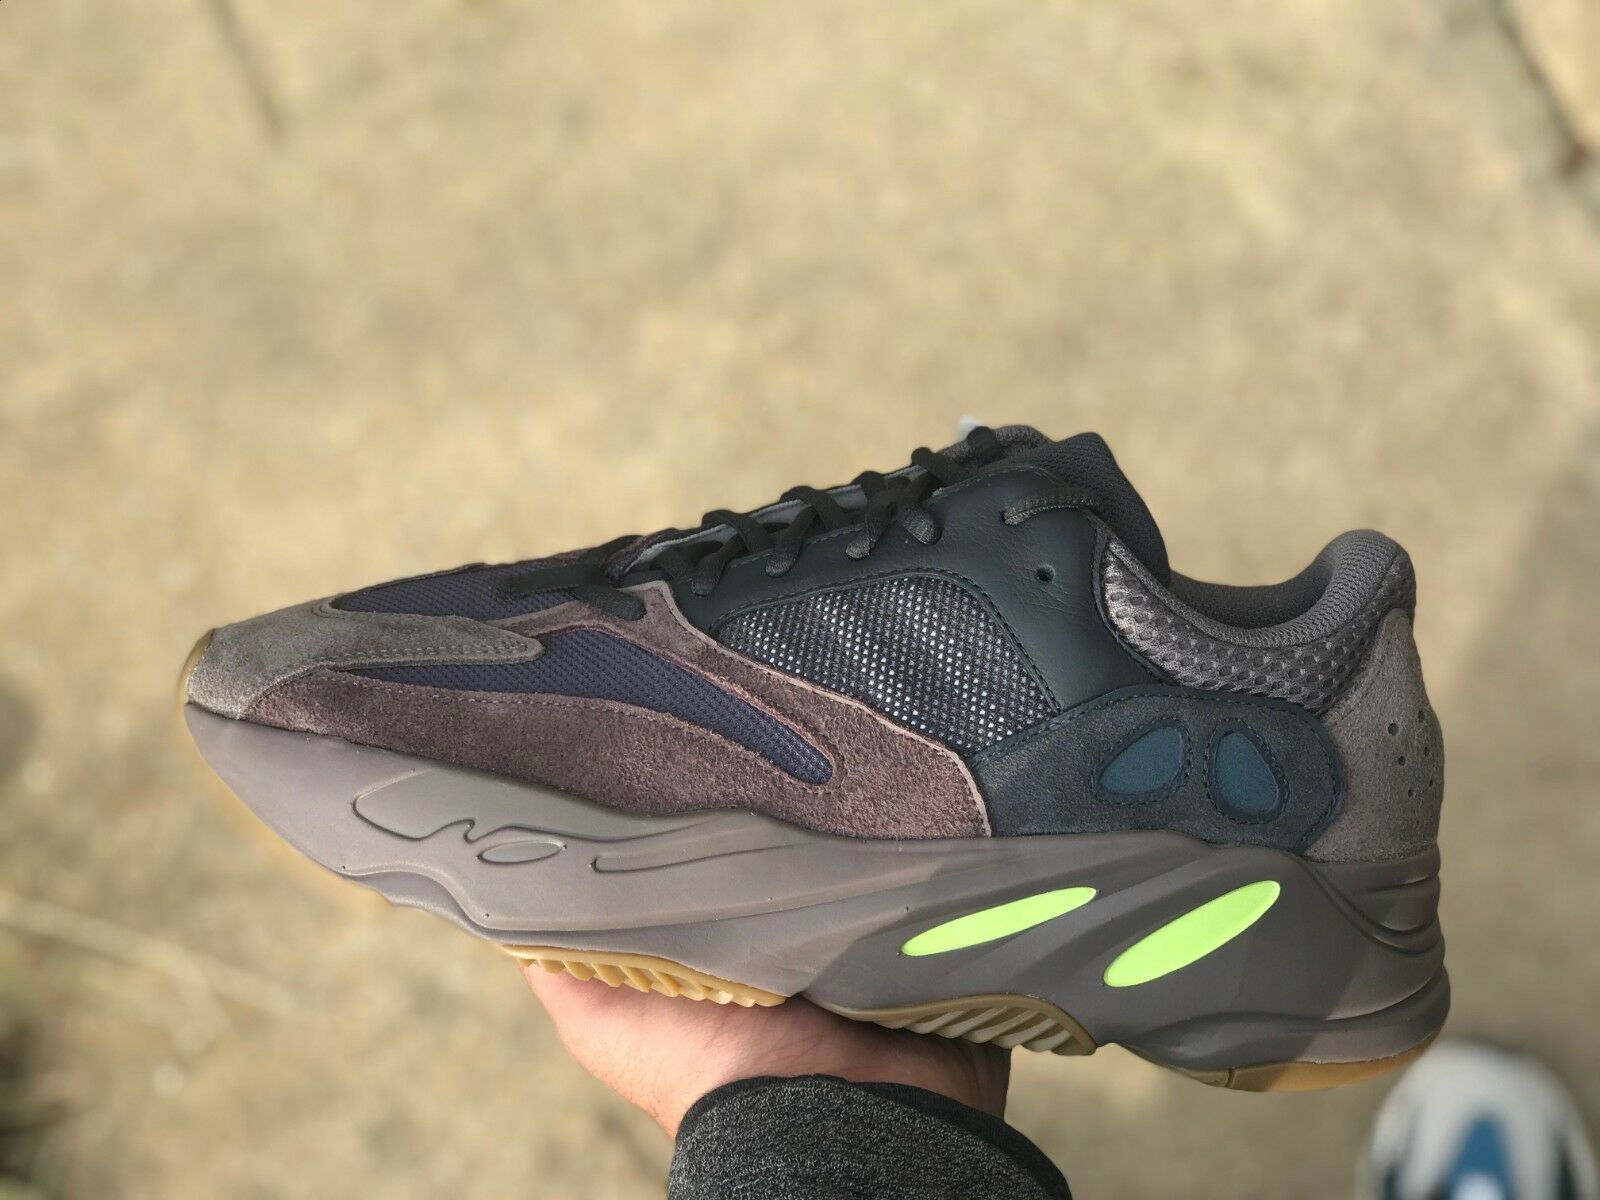 Yeezy Boost 700 Mauve Size US 10 Brand New DS Confirmed Order